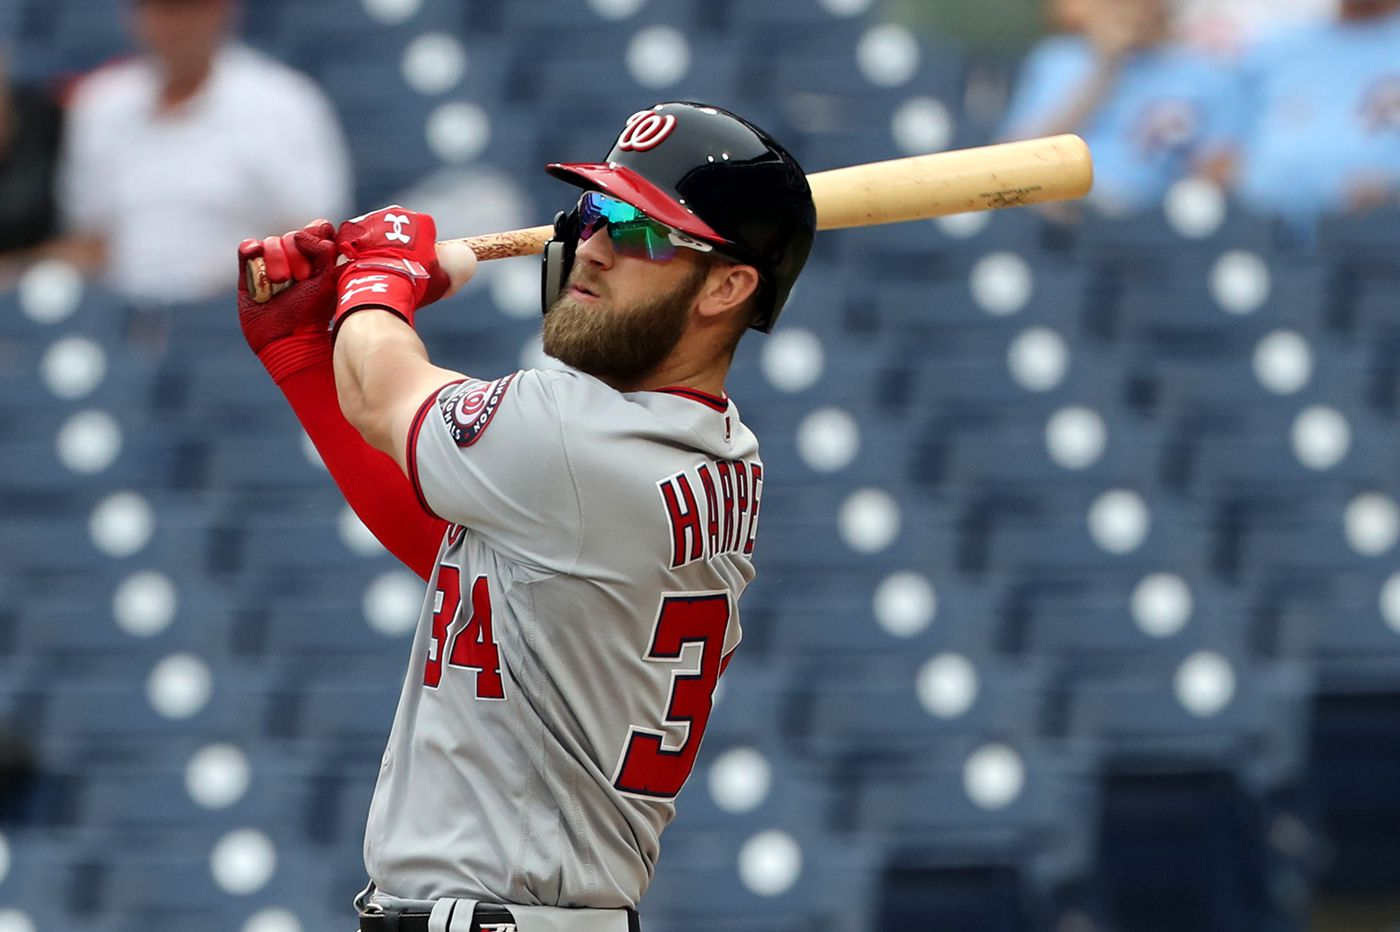 Phillies signing Bryce Harper would be 'amazing,' Andrew McCutchen says